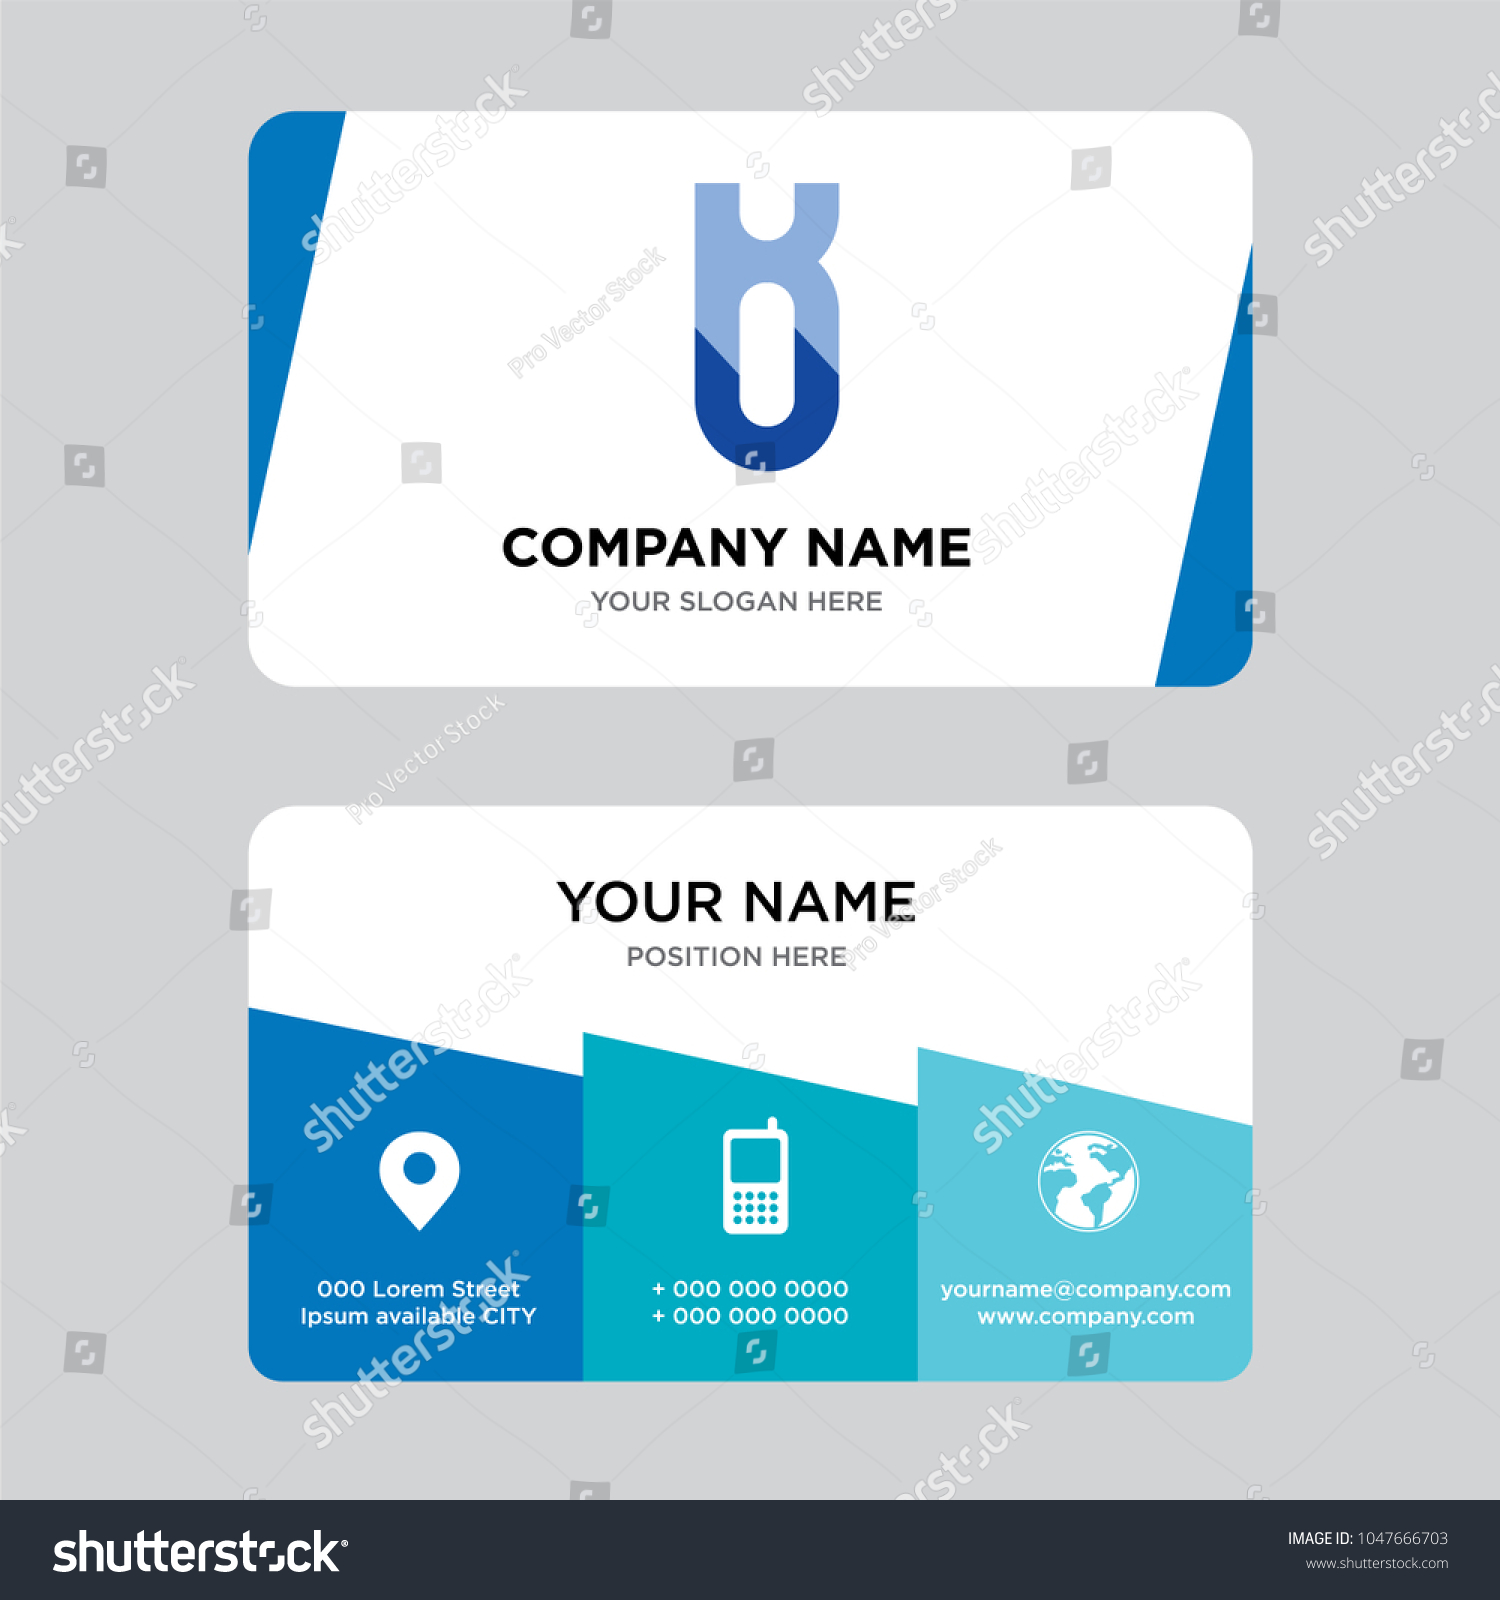 Ku uk business card design template stock vector royalty free ku or uk business card design template visiting for your company modern creative and fbccfo Image collections